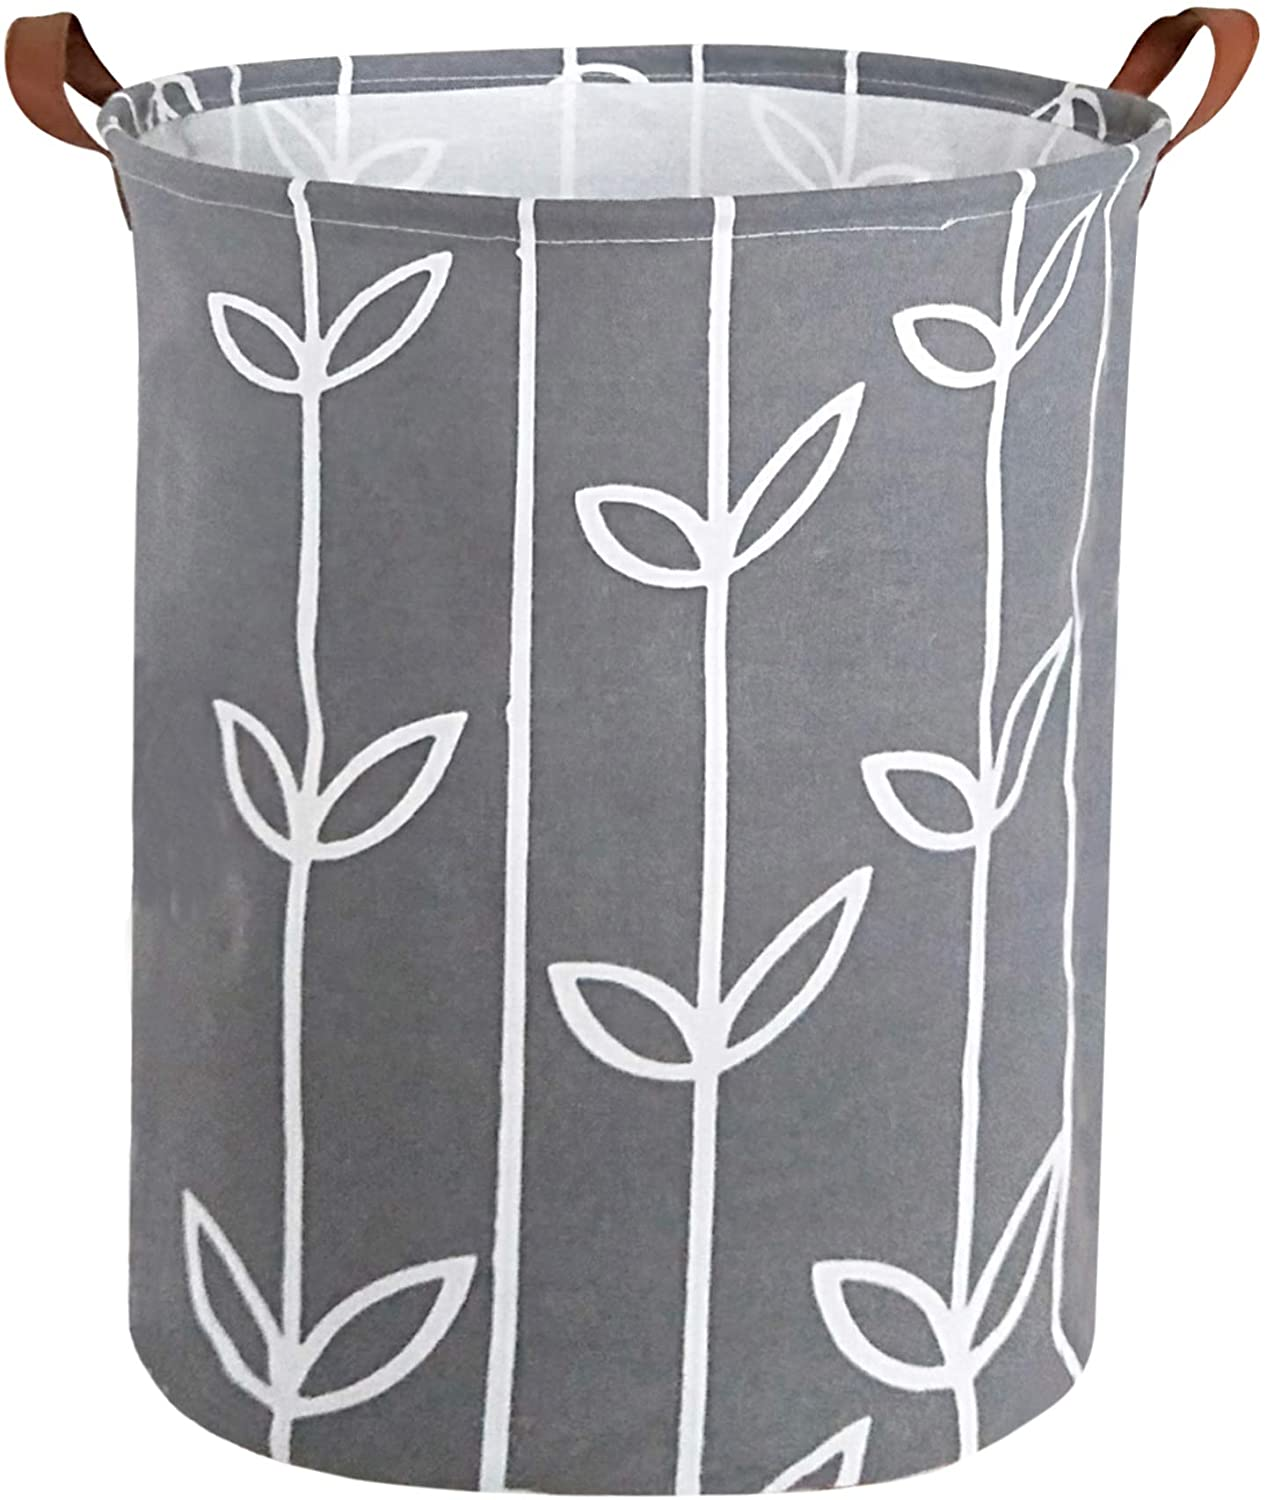 HIYAGON Large Storage Baskets,Waterproof Laundry Baskets,Collapsible Canvas Basket for Storage Bin for Kids Room,Toy Organizer,Home Decor,Baby Hamper (Grey Leaves)